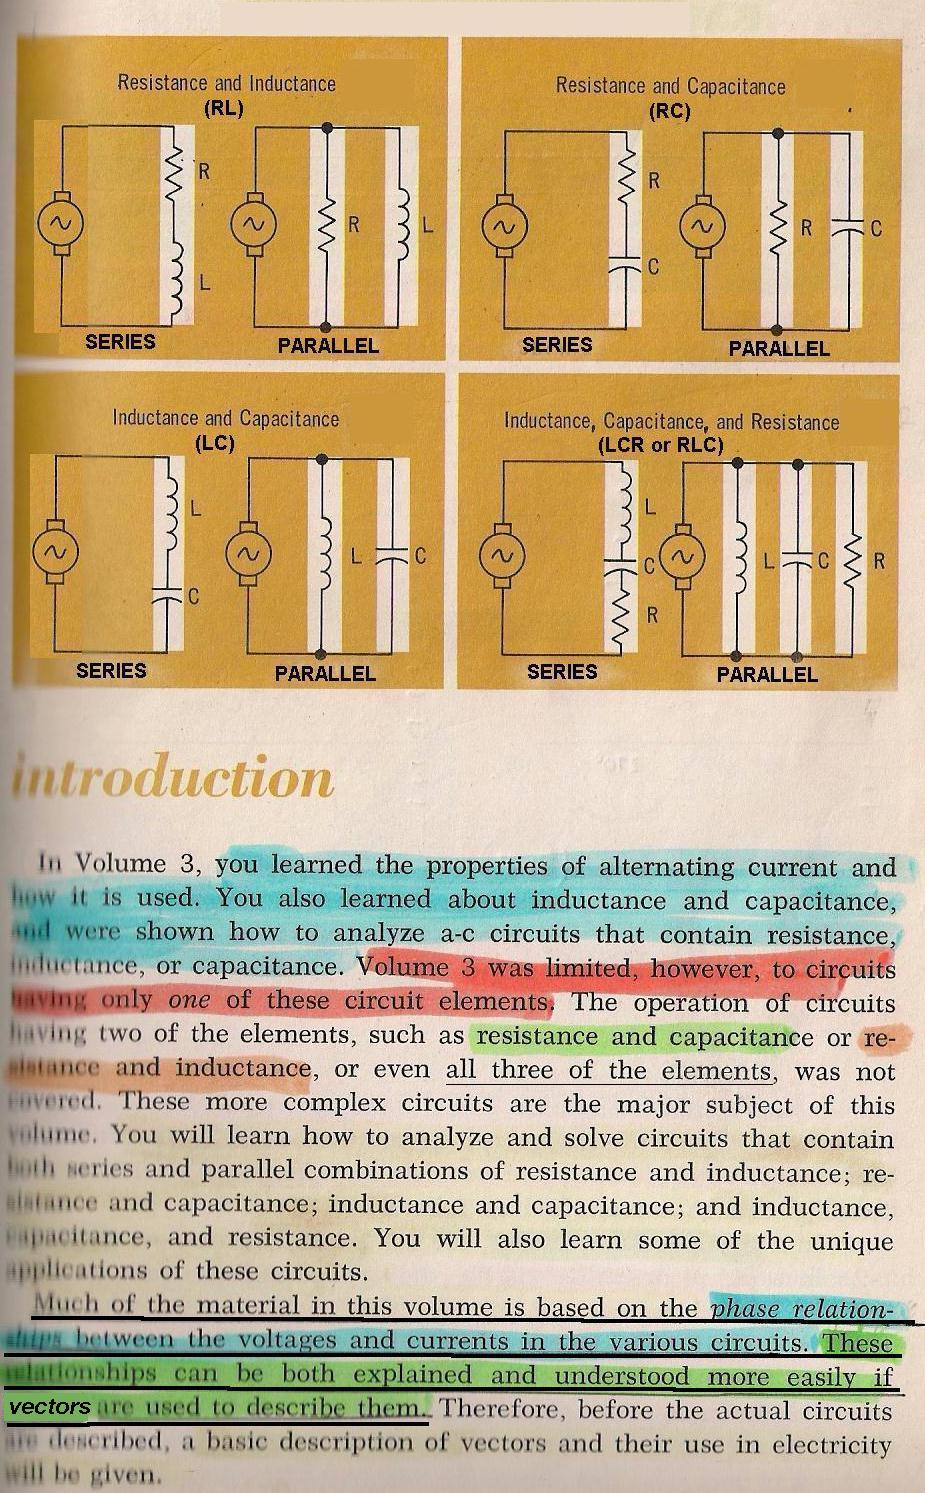 Rlc Circuits 001 Vectors Introduction By Larry E Gugle K4rfe Ac Circuit Inductance And Capacitance Lcr In Series